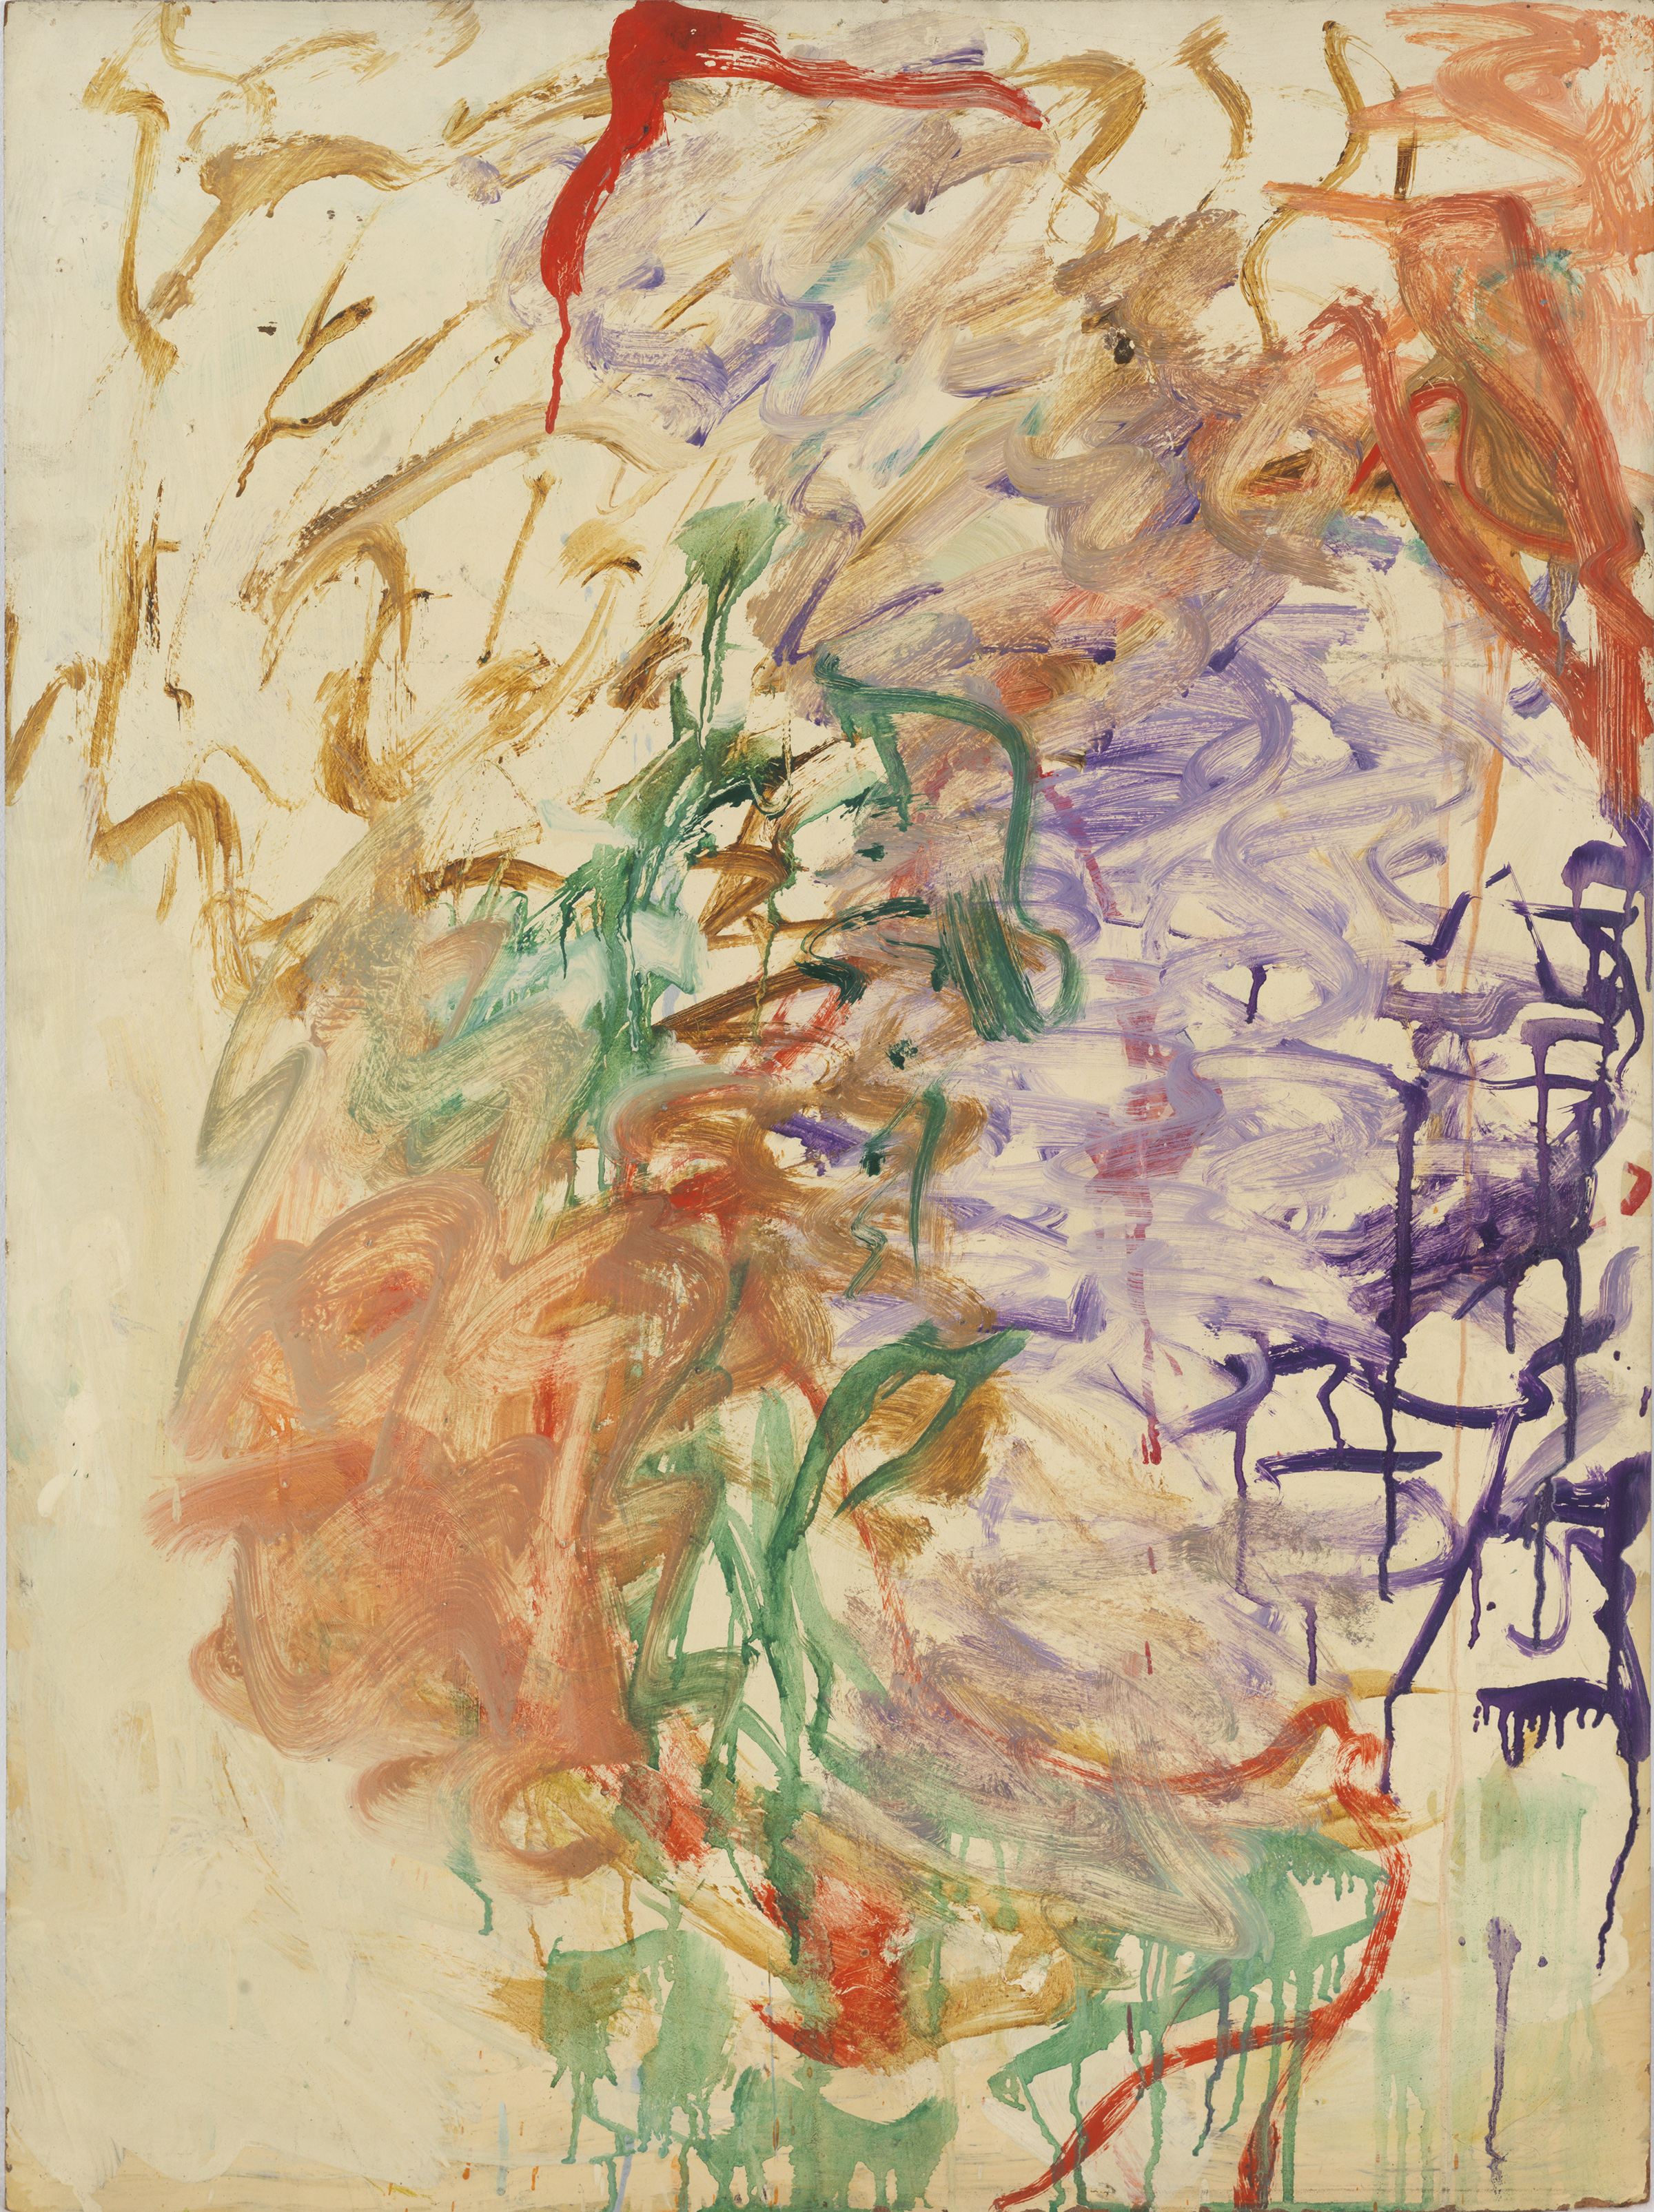 Pat Passlof  Tan , 1960 Oil on linen 24 x 32 inches